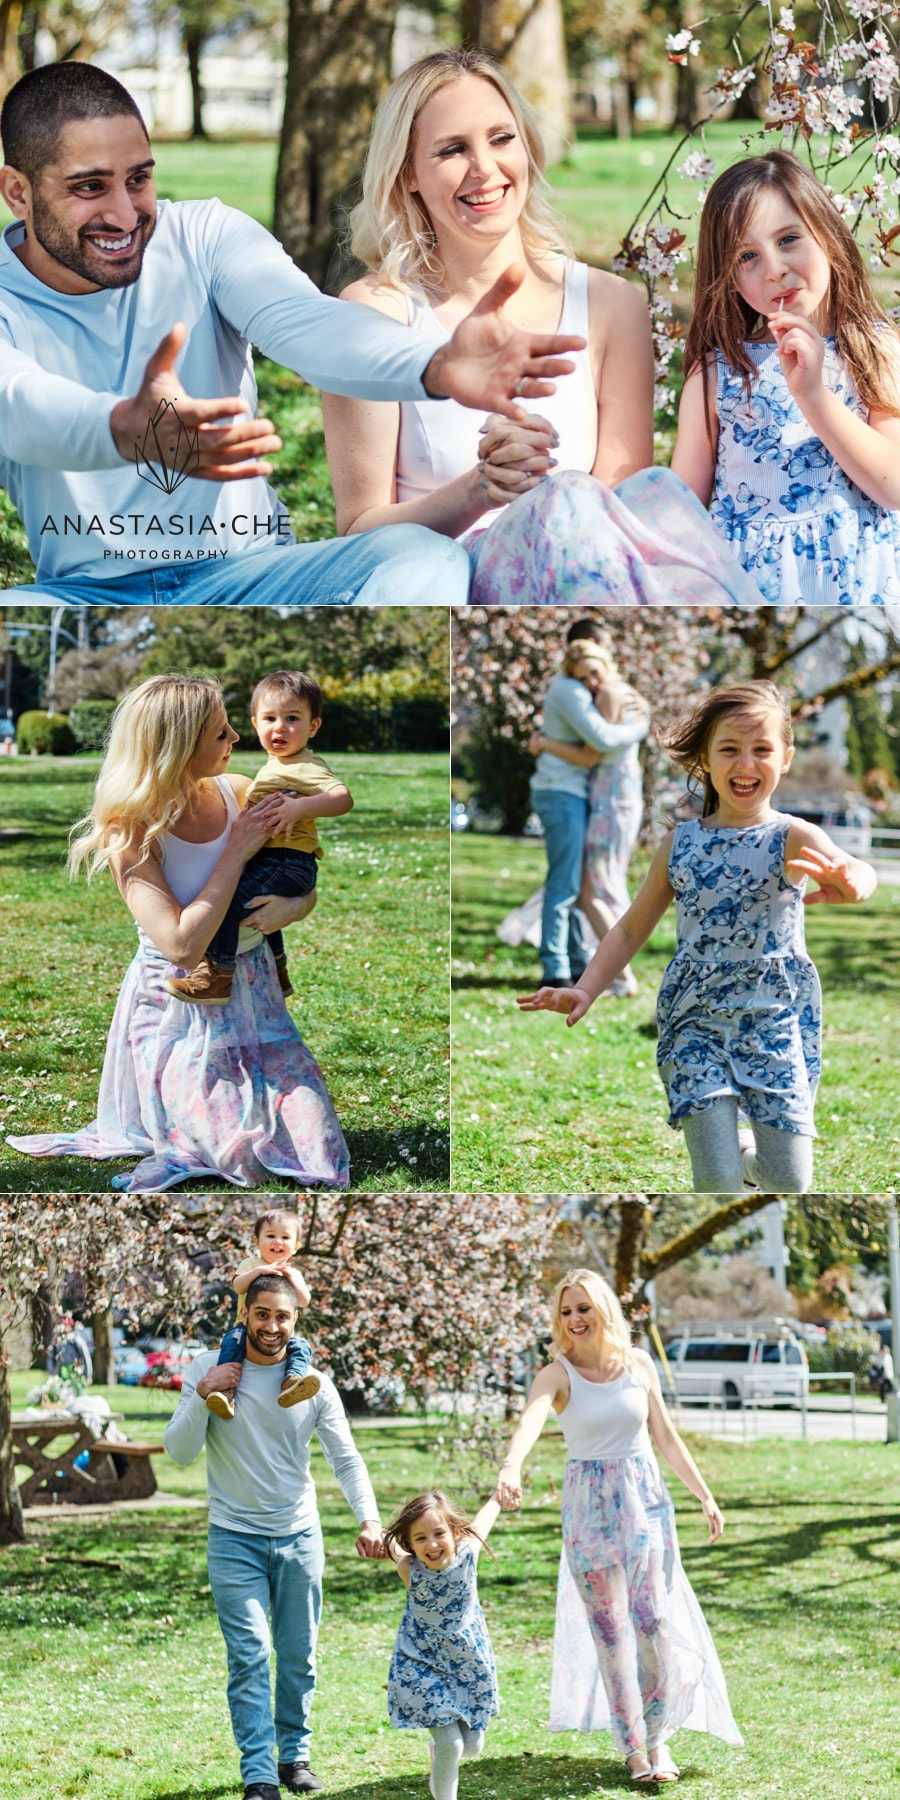 Family spring blossoms photo session in New Westminster